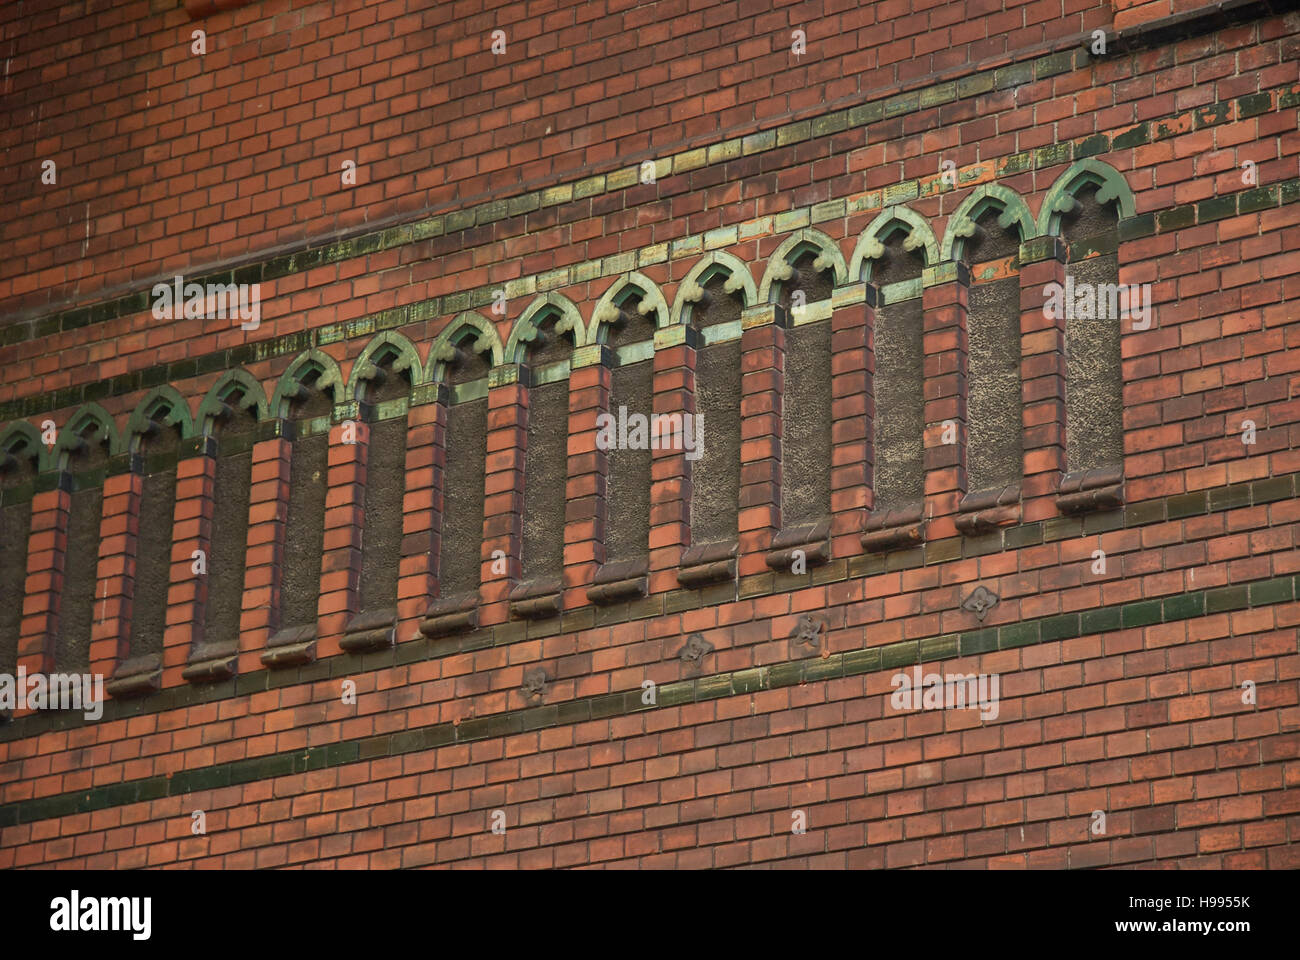 Ornaments of Gothic brick architecture at an outside wall of the Church of John the Baptist, Lüneburg, Germany - Stock Image